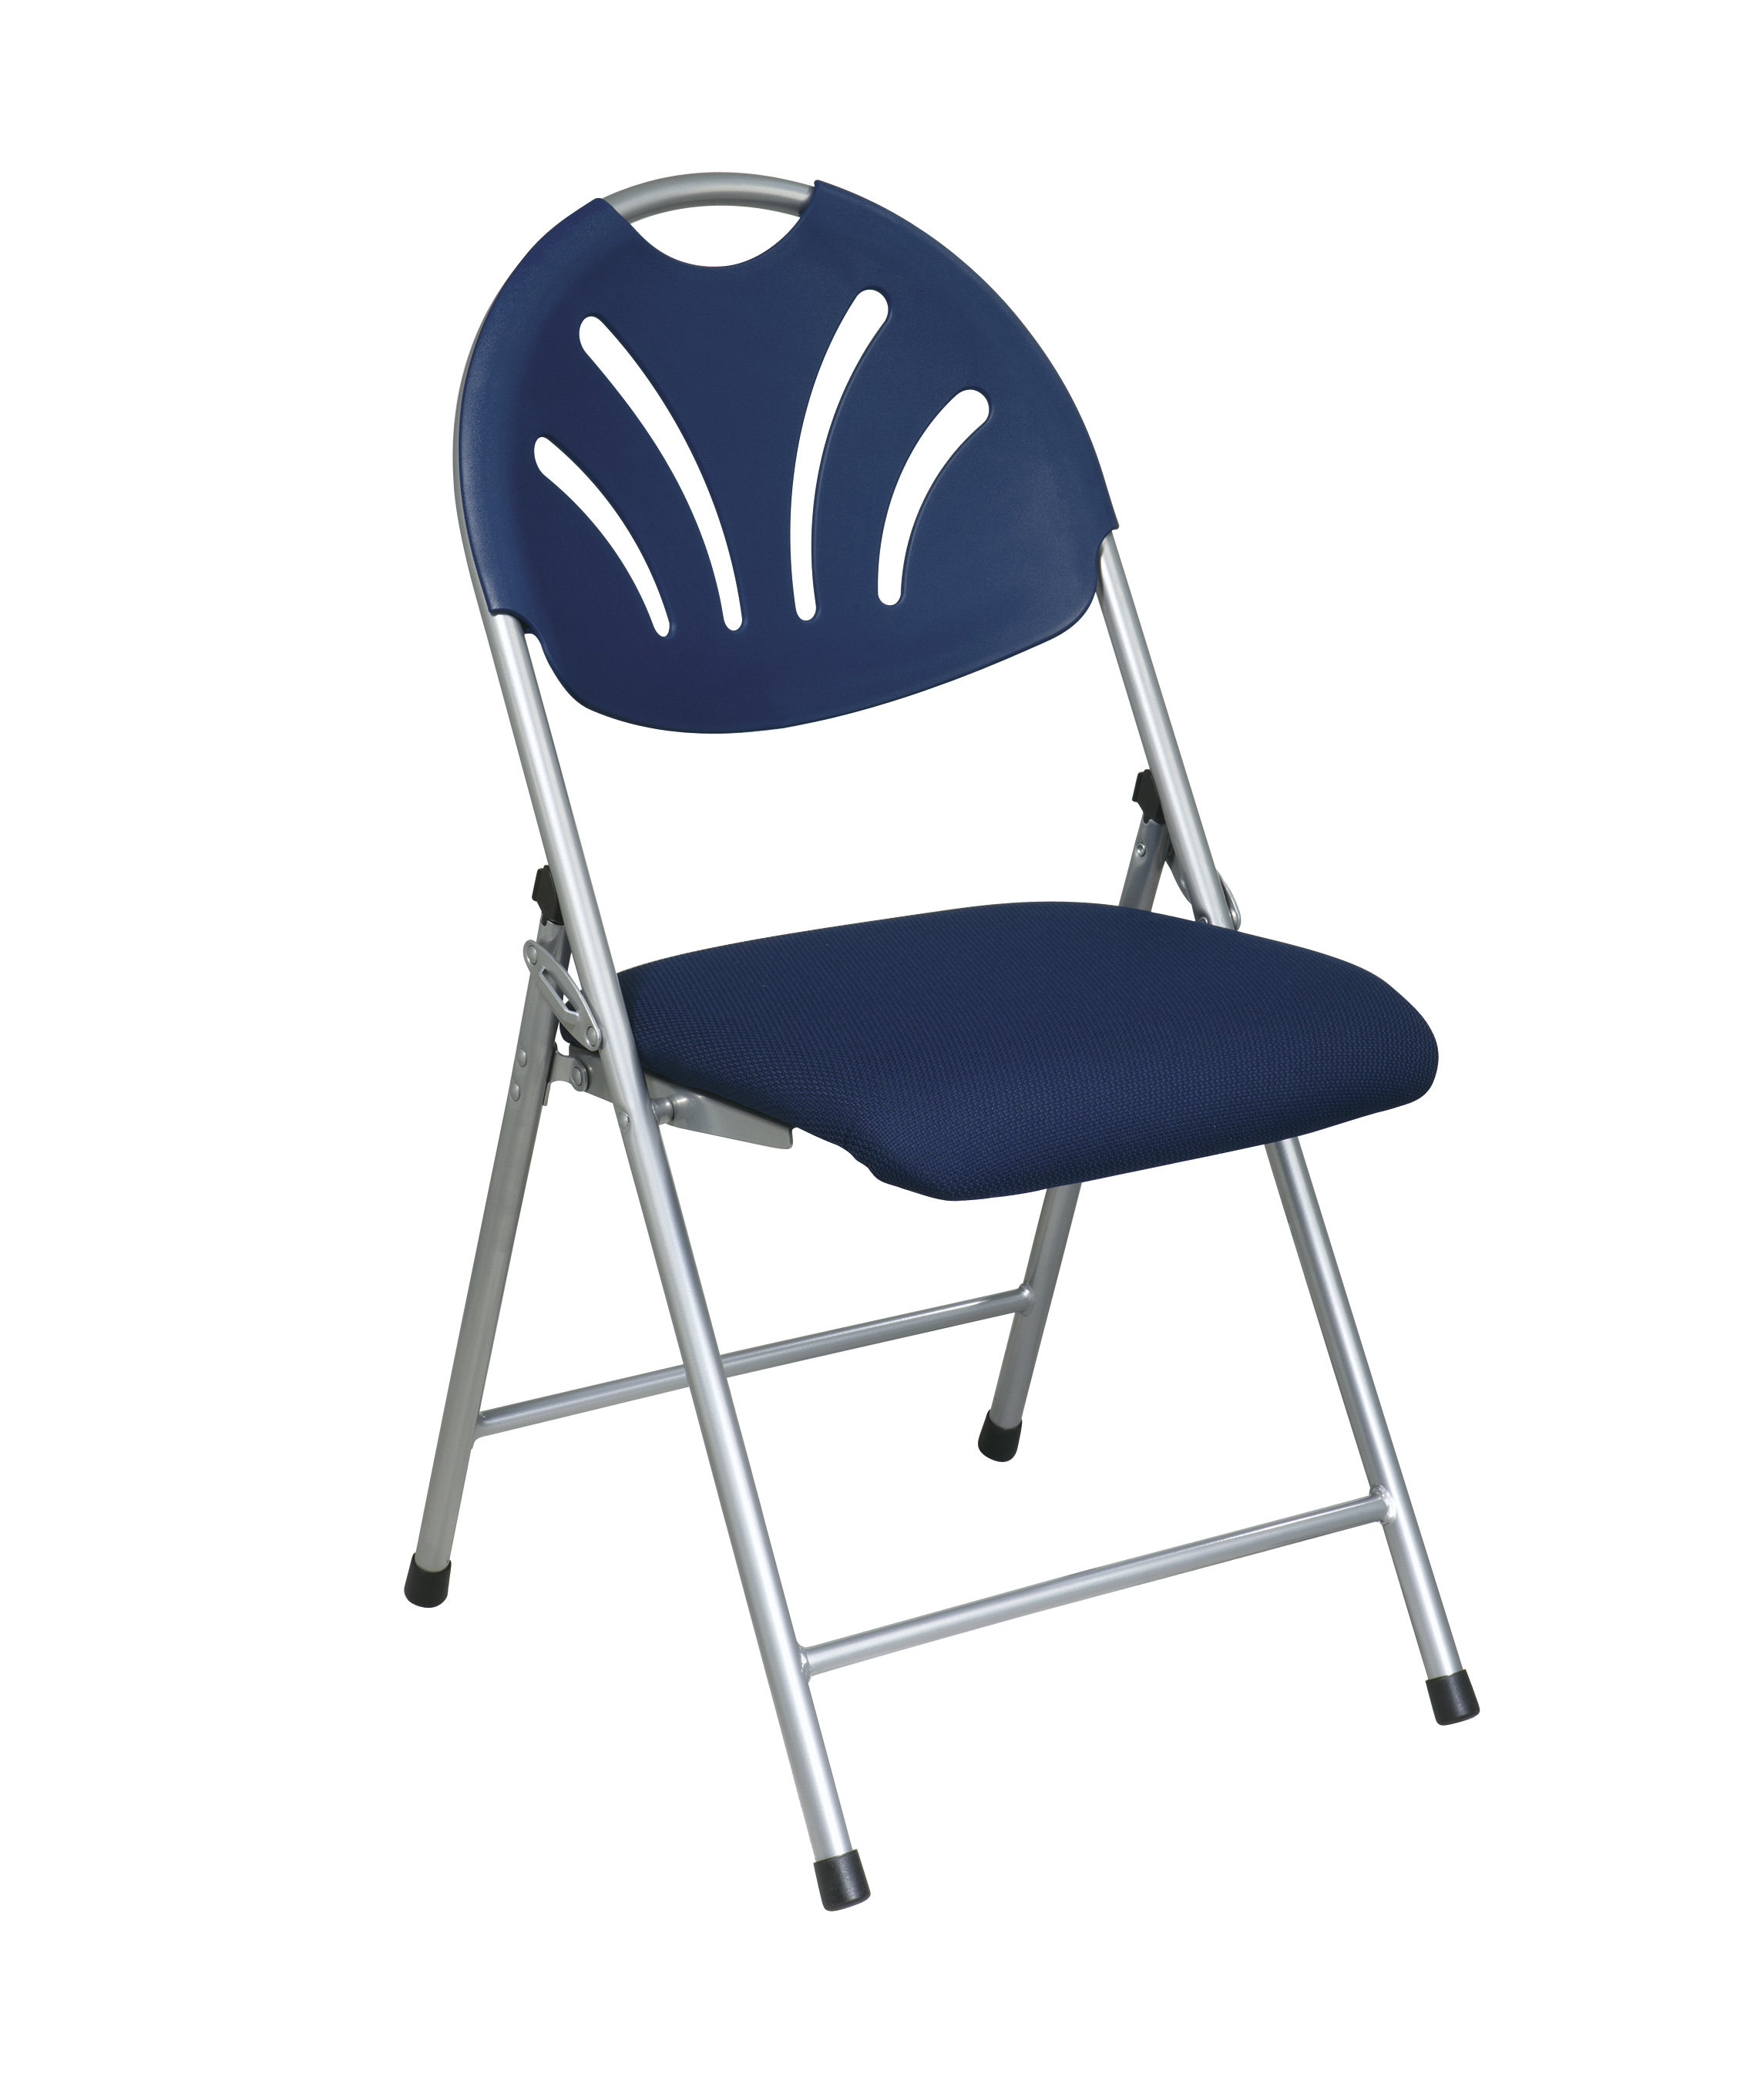 fice Star Folding Chair with Fabric Seat by OJ merce $124 48 $203 99